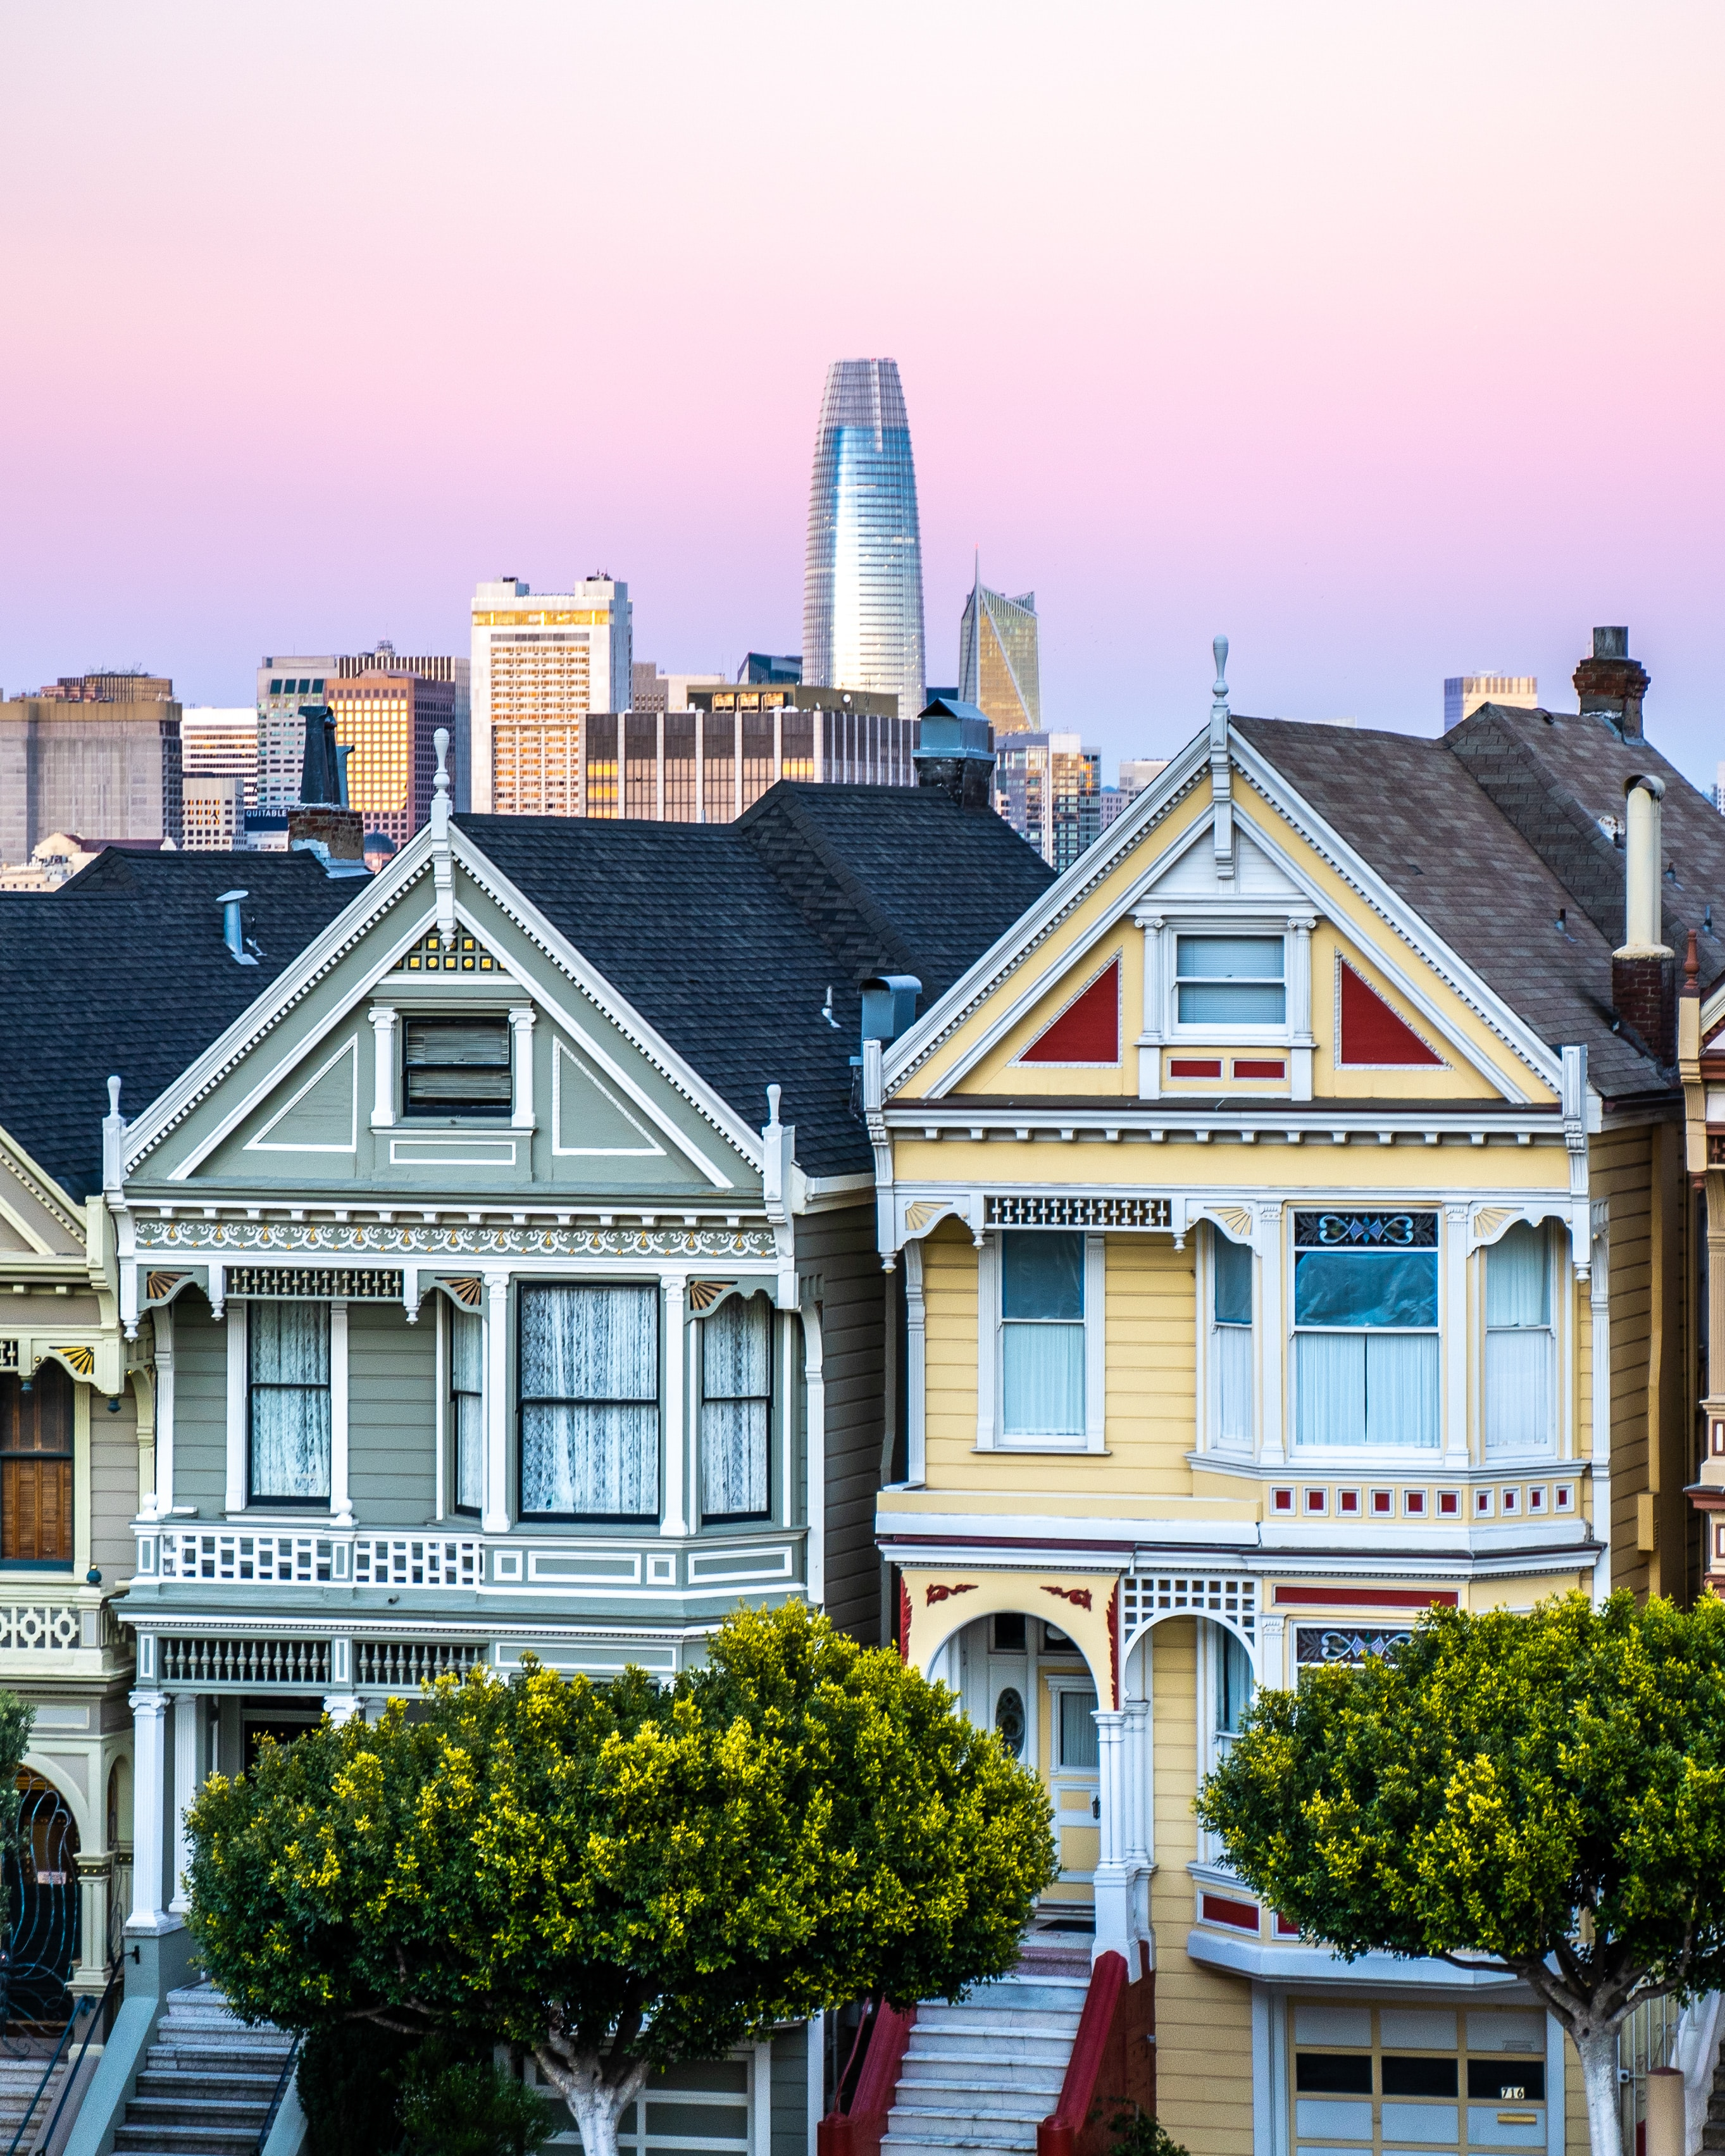 Buying vs renting a house? There are pros and cons for each real estate side. One thing to consider when deciding if you should buy or rent is if you have a substantial down payment. Learn more about this and the 10 questions to ask yourself to help you decide whether to rent or buy a house. #renting #buyingahouse